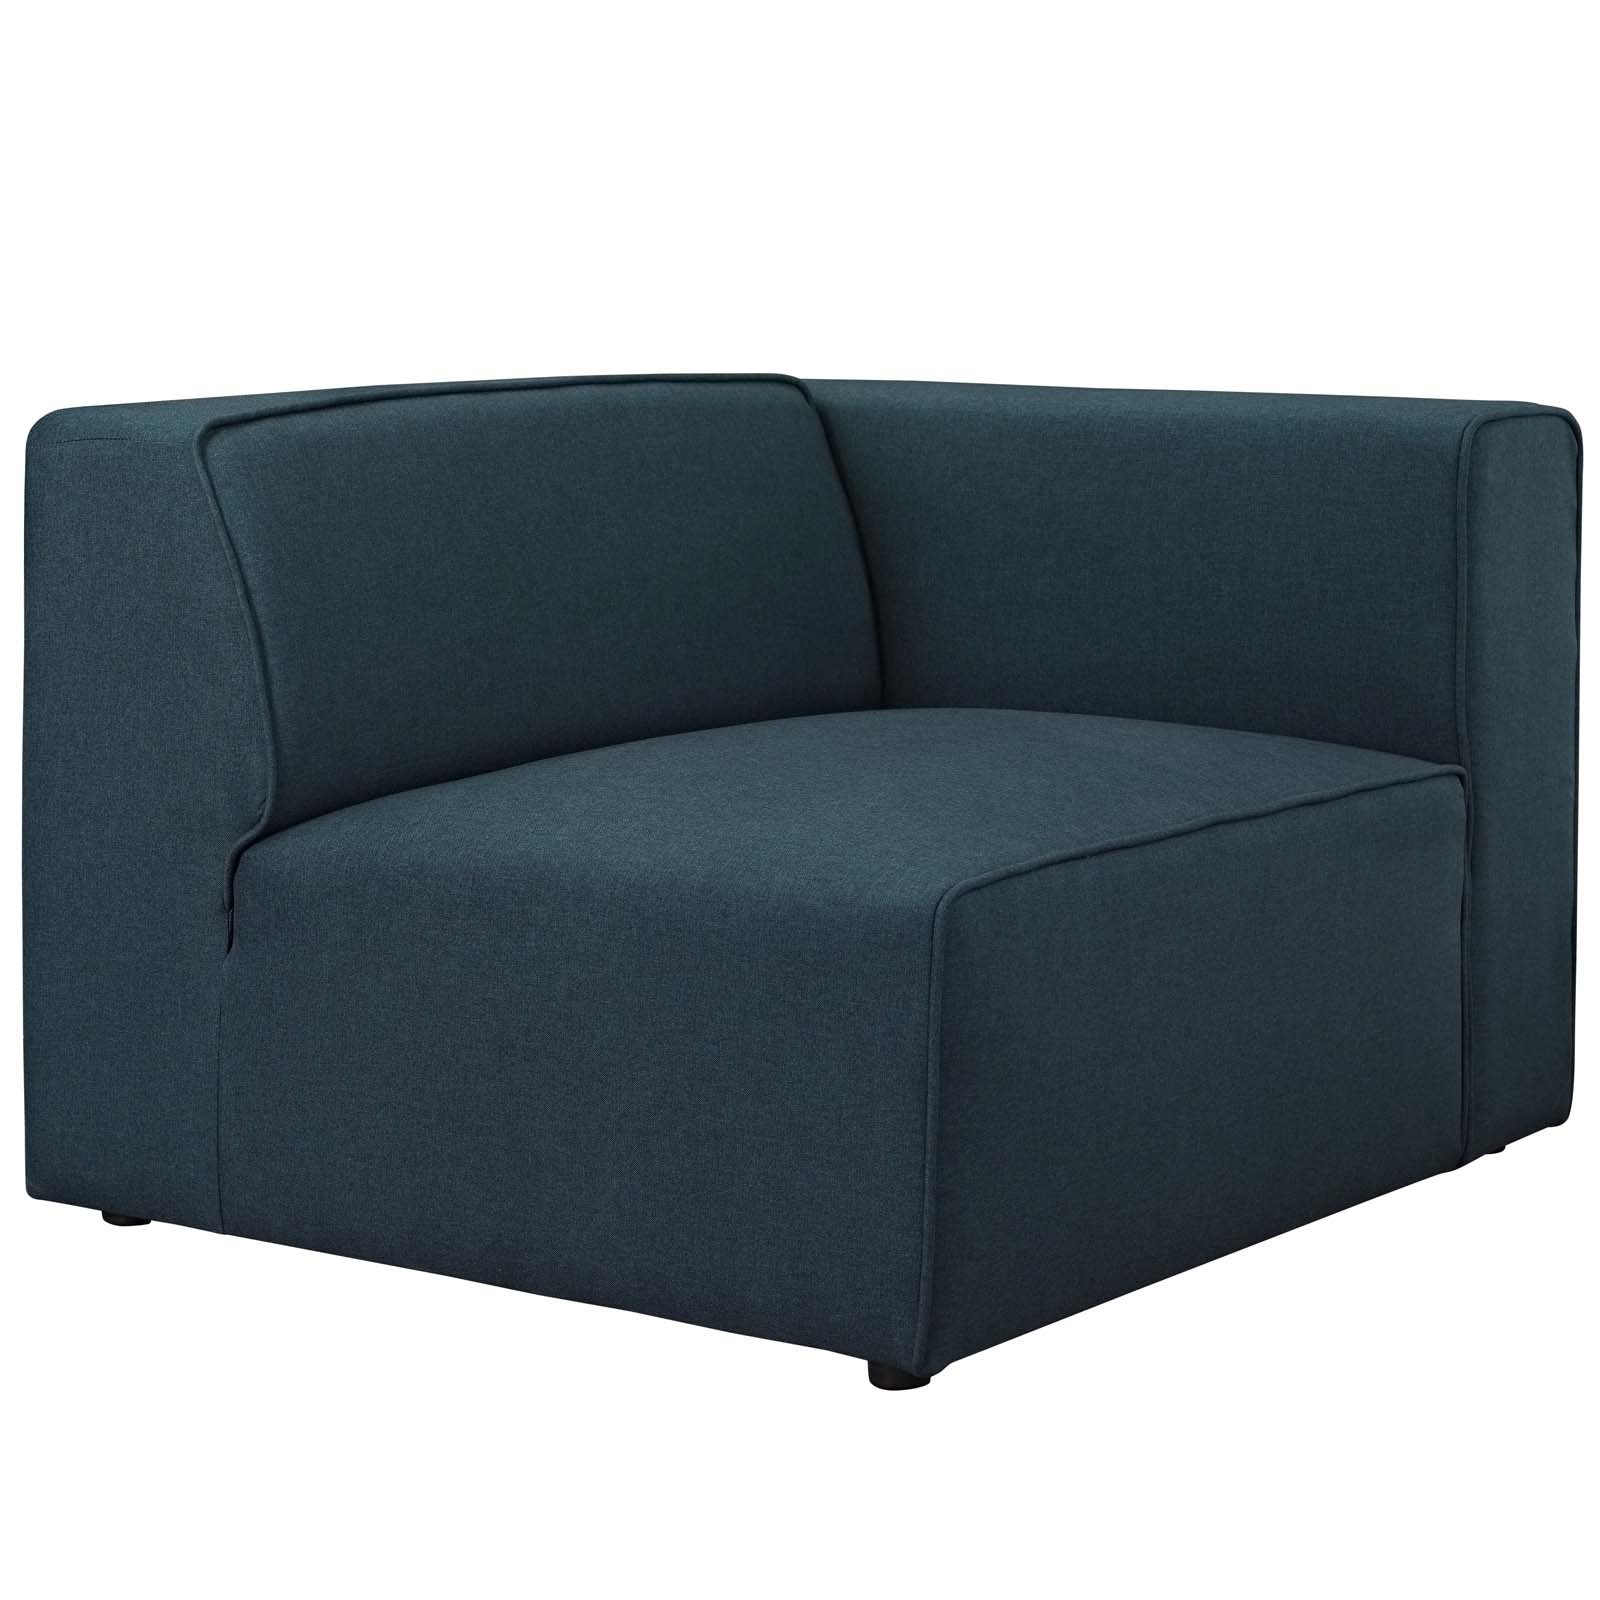 Mingle Fabric Right-Facing Sofa